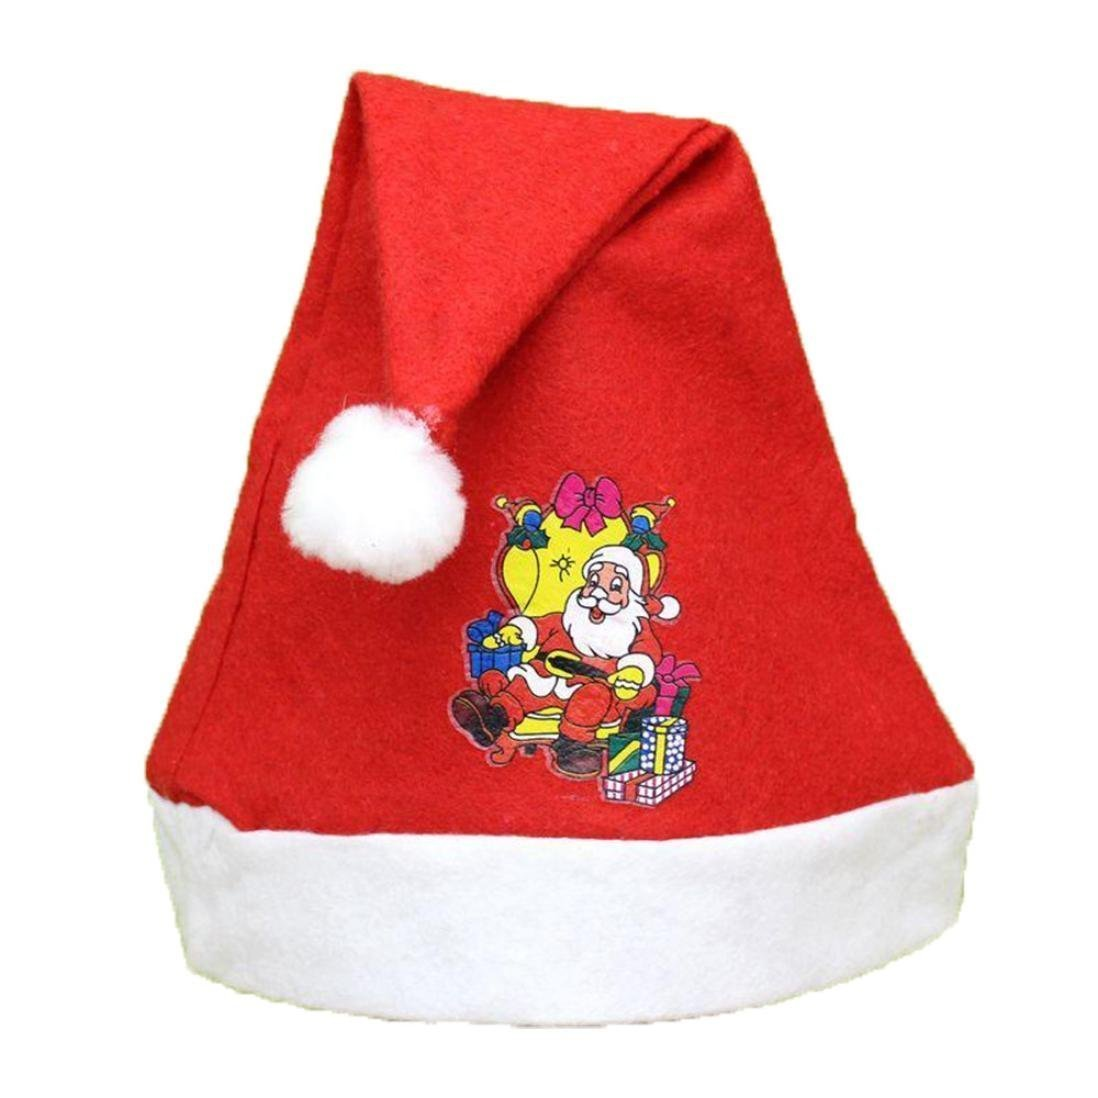 fa9c36835a2a3 Get Quotations · GQMART Adult Christmas Hats Fashion Holiday Xmas Cap For  Santa Claus Gifts